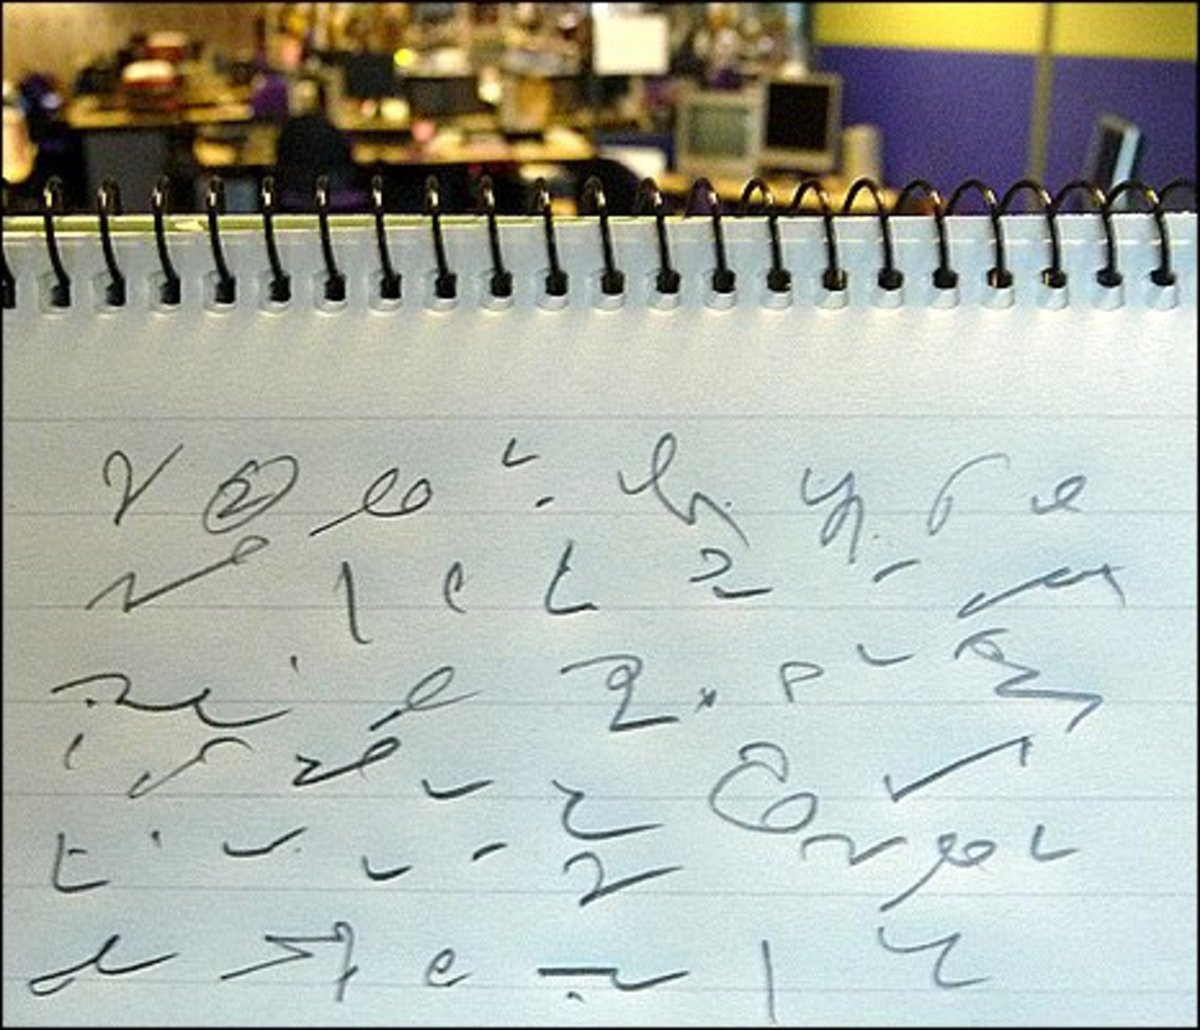 BBC broadcaster John Humphrys' pitman notes